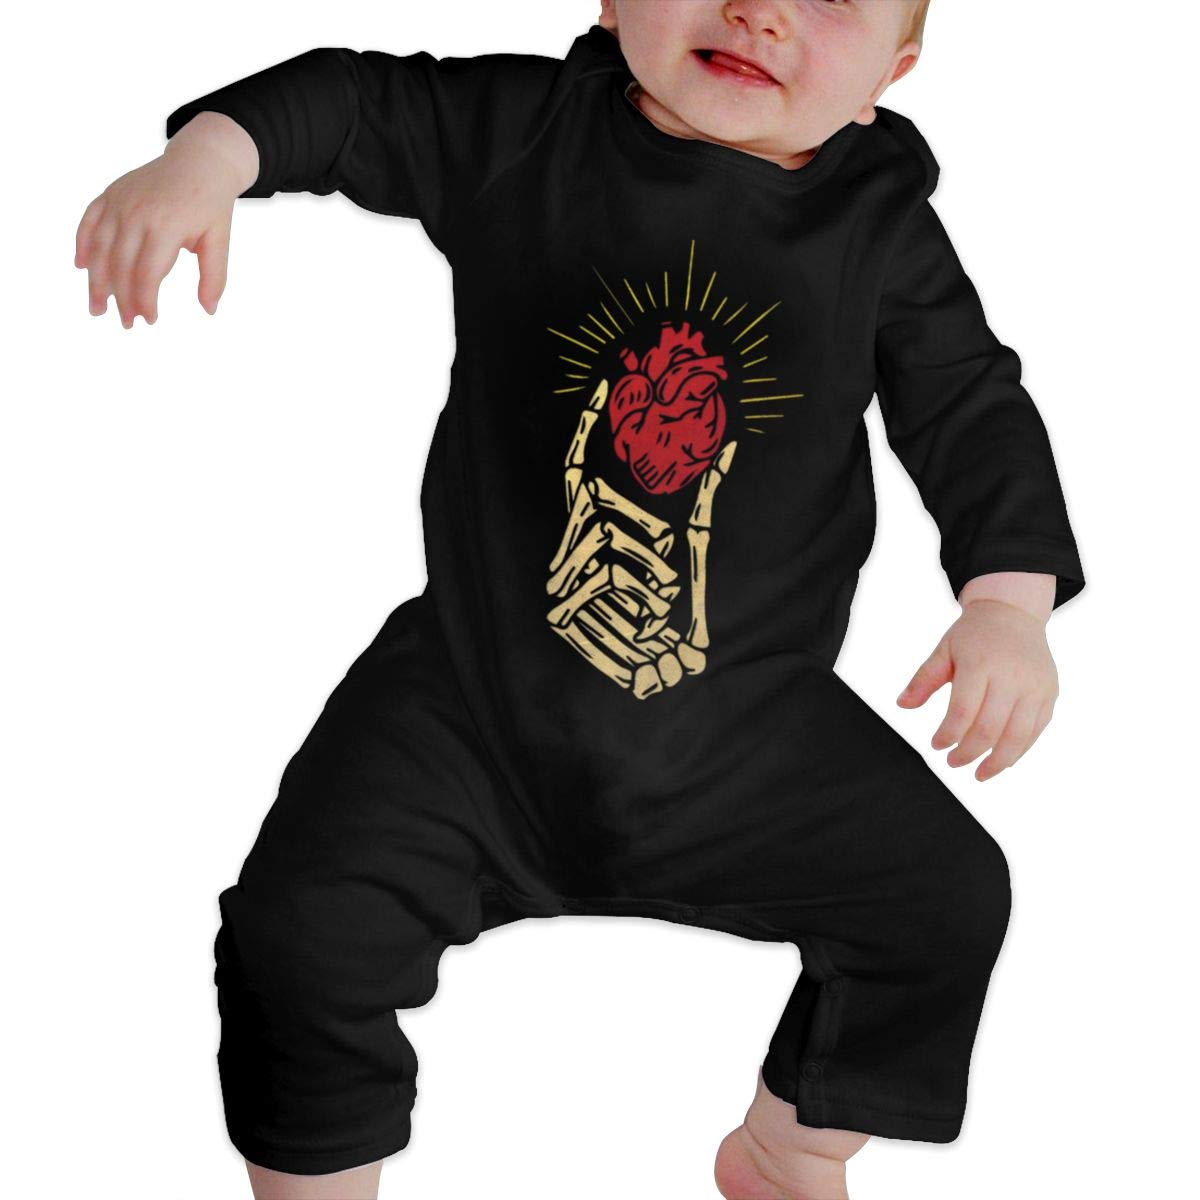 Fasenix I Choose You Newborn Baby Boy Girl Romper Jumpsuit Long Sleeve Bodysuit Overalls Outfits Clothes